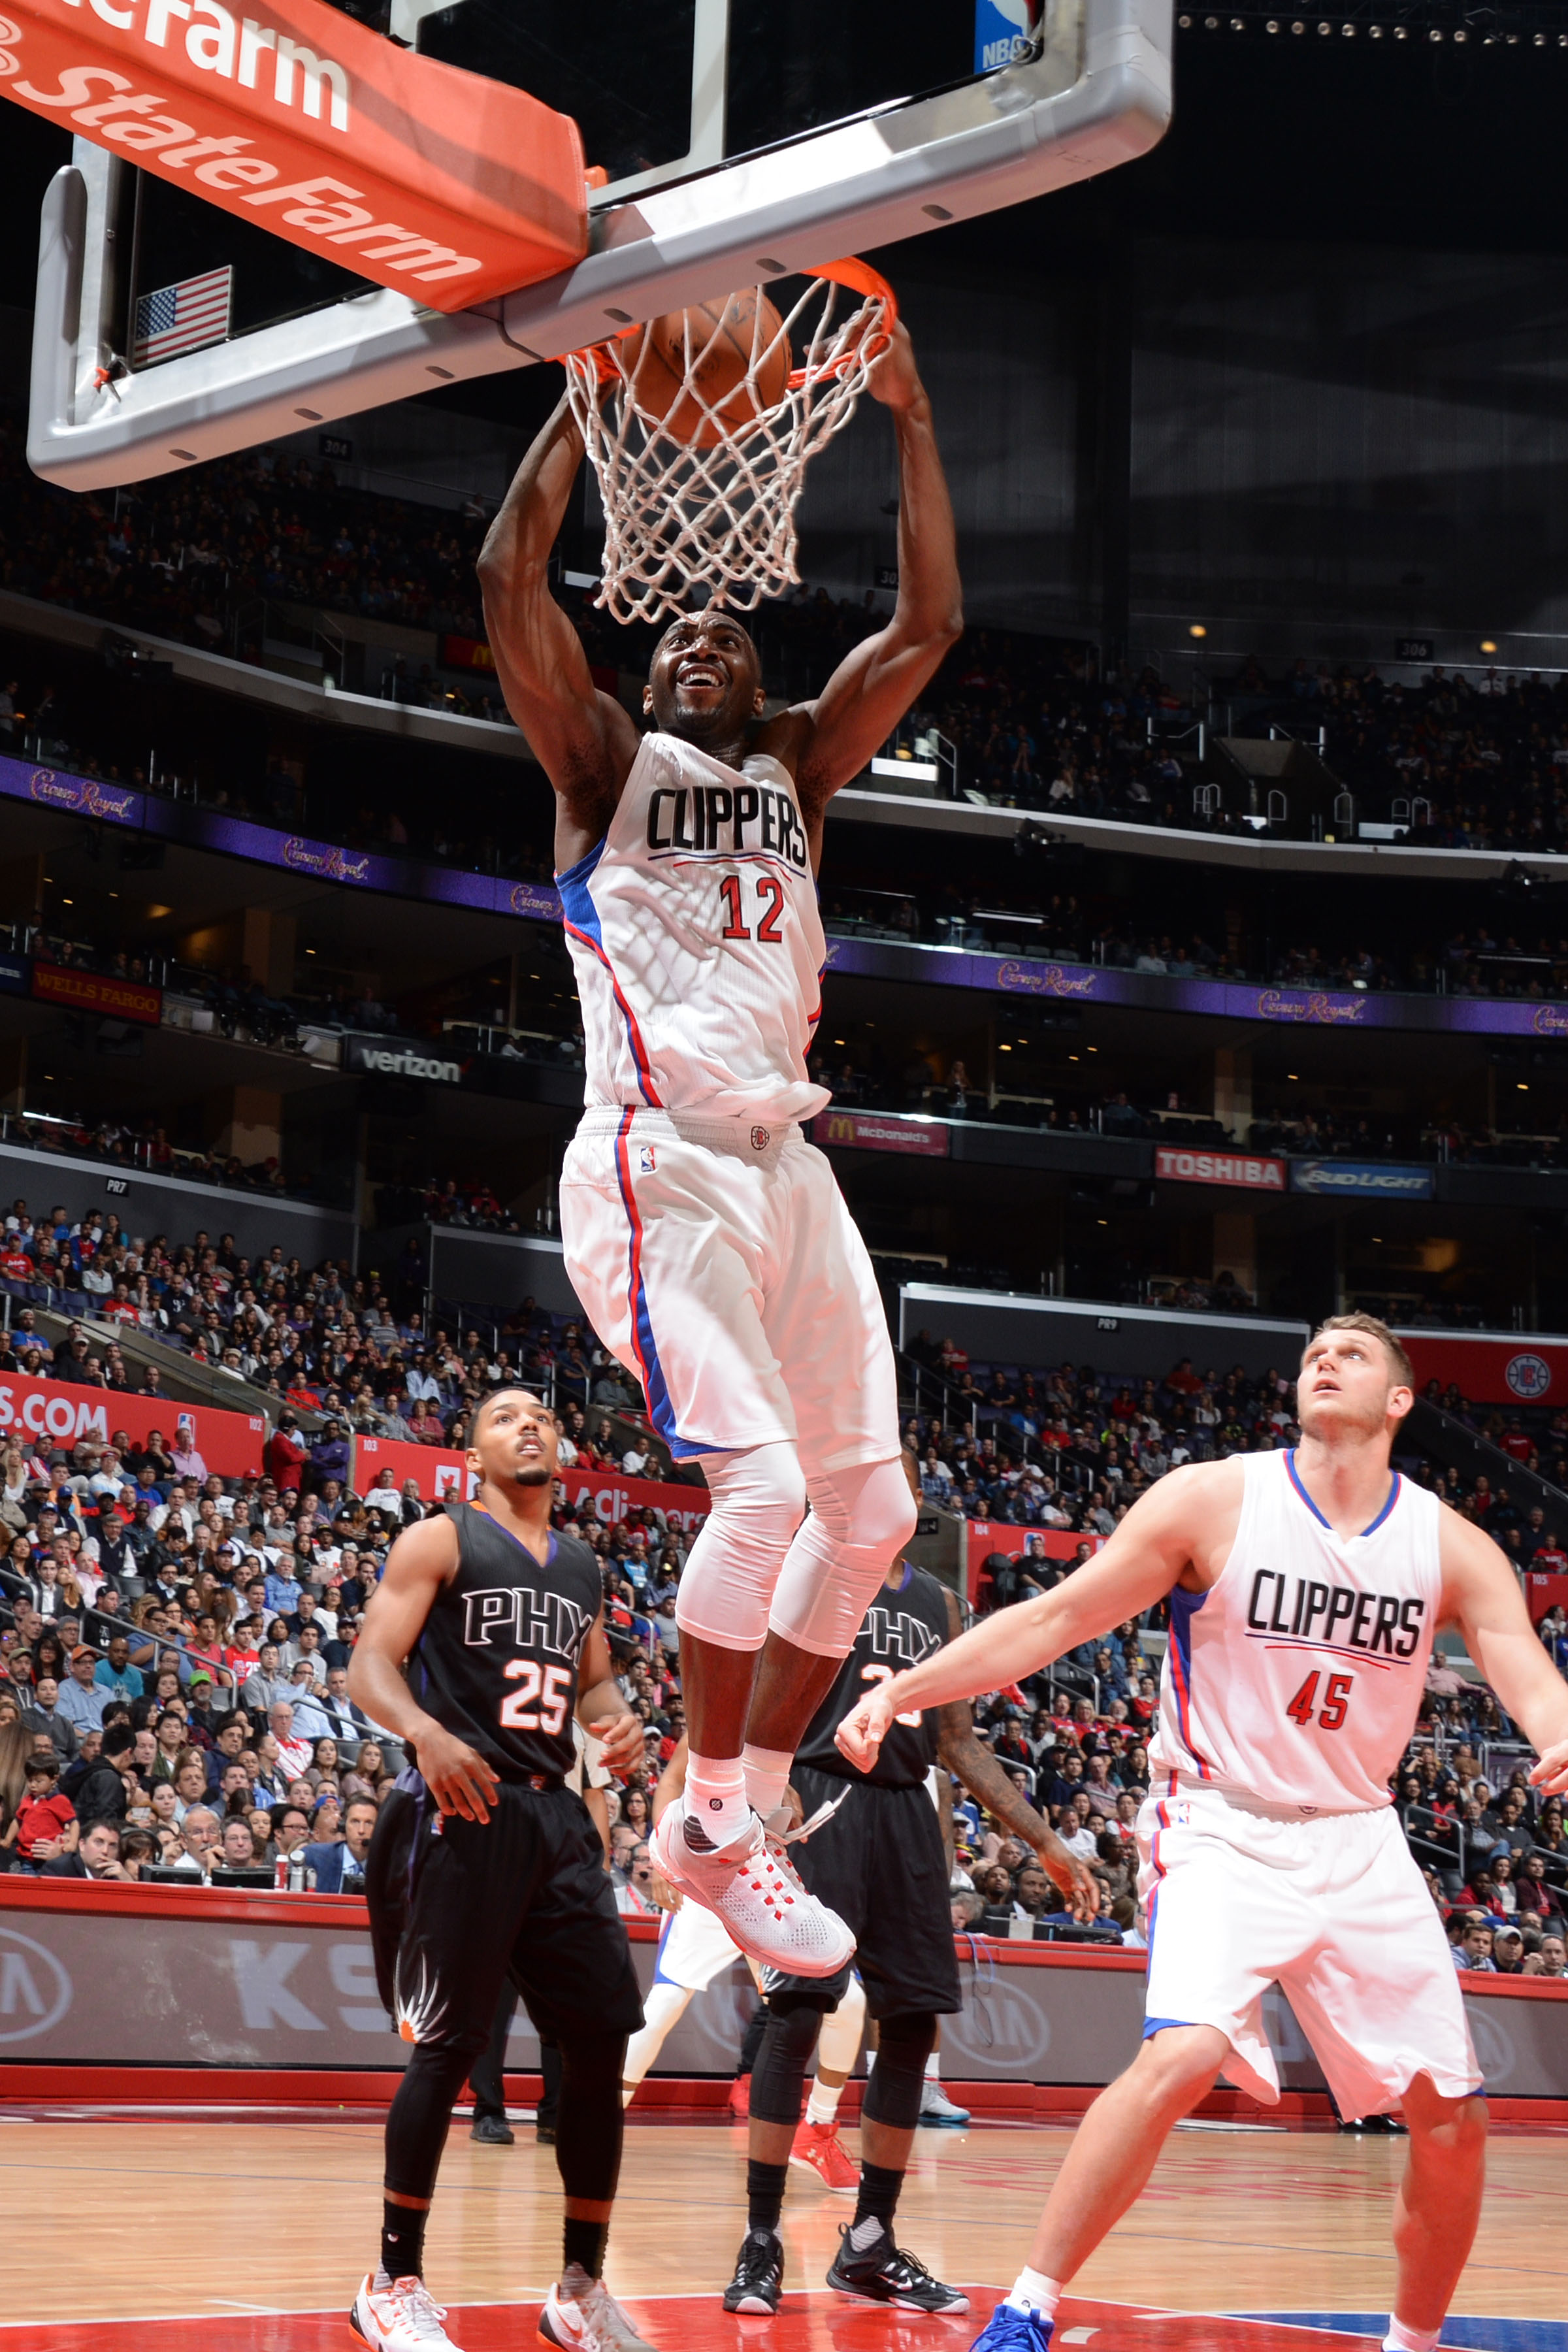 LOS ANGELES, CA - FEBRUARY 22:  Luc Richard Mbah a Moute #12 of the Los Angeles Clippers' dunks against the Phoenix Suns  on February 22, 2016 at STAPLES Center in Los Angeles, California. (Photo by Andrew D. Bernstein/NBAE via Getty Images)